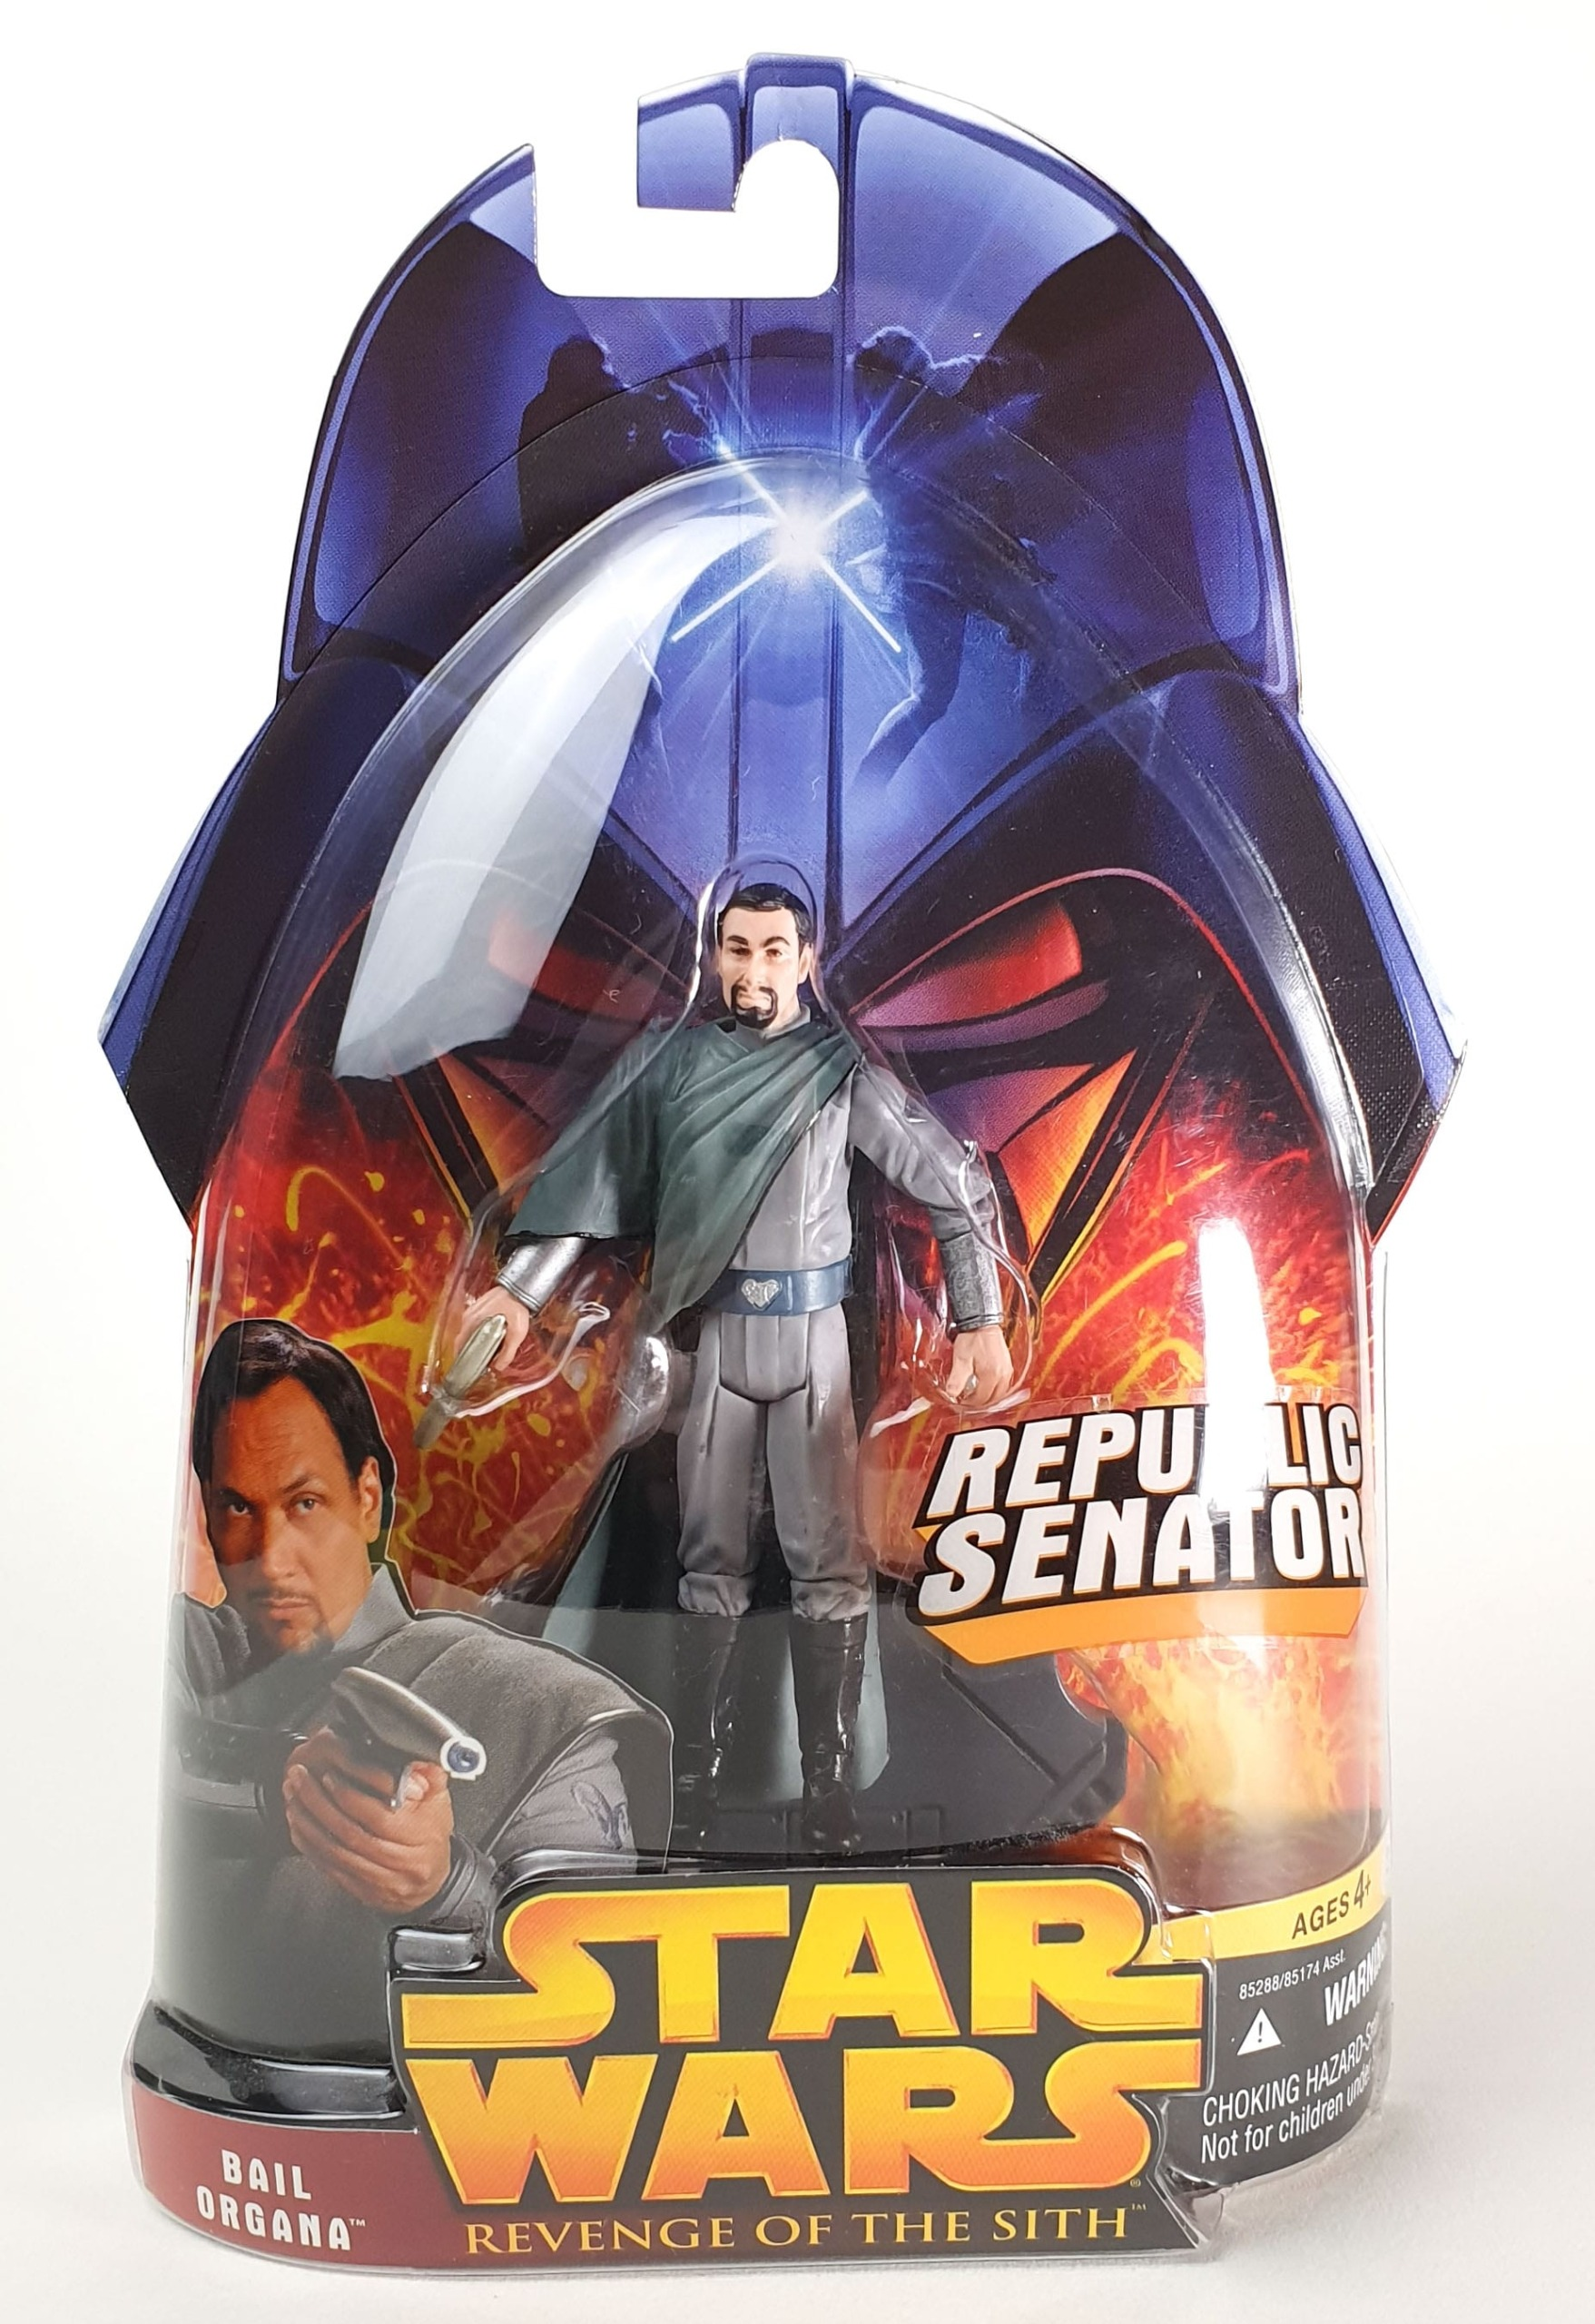 Bail Organa Star Wars Episode Iii Revenge Of The Sith Toy Line Hasbro 2005 Toy Nerds